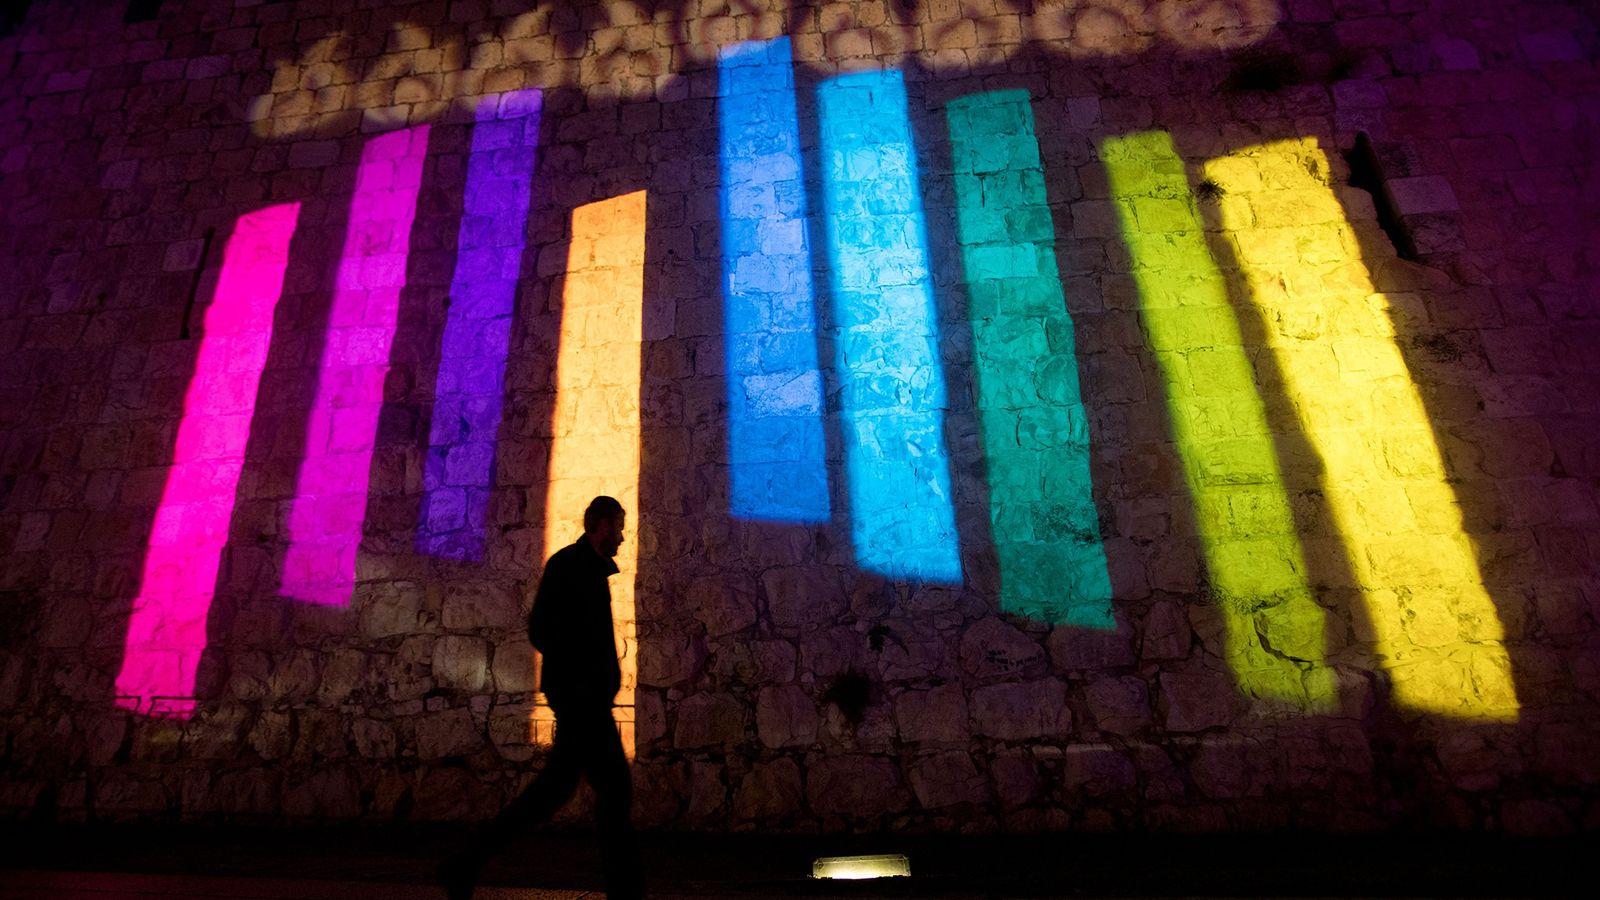 On the walls of Jerusalem's Old City, a colorful menorah lights up the night during Hanukkah.